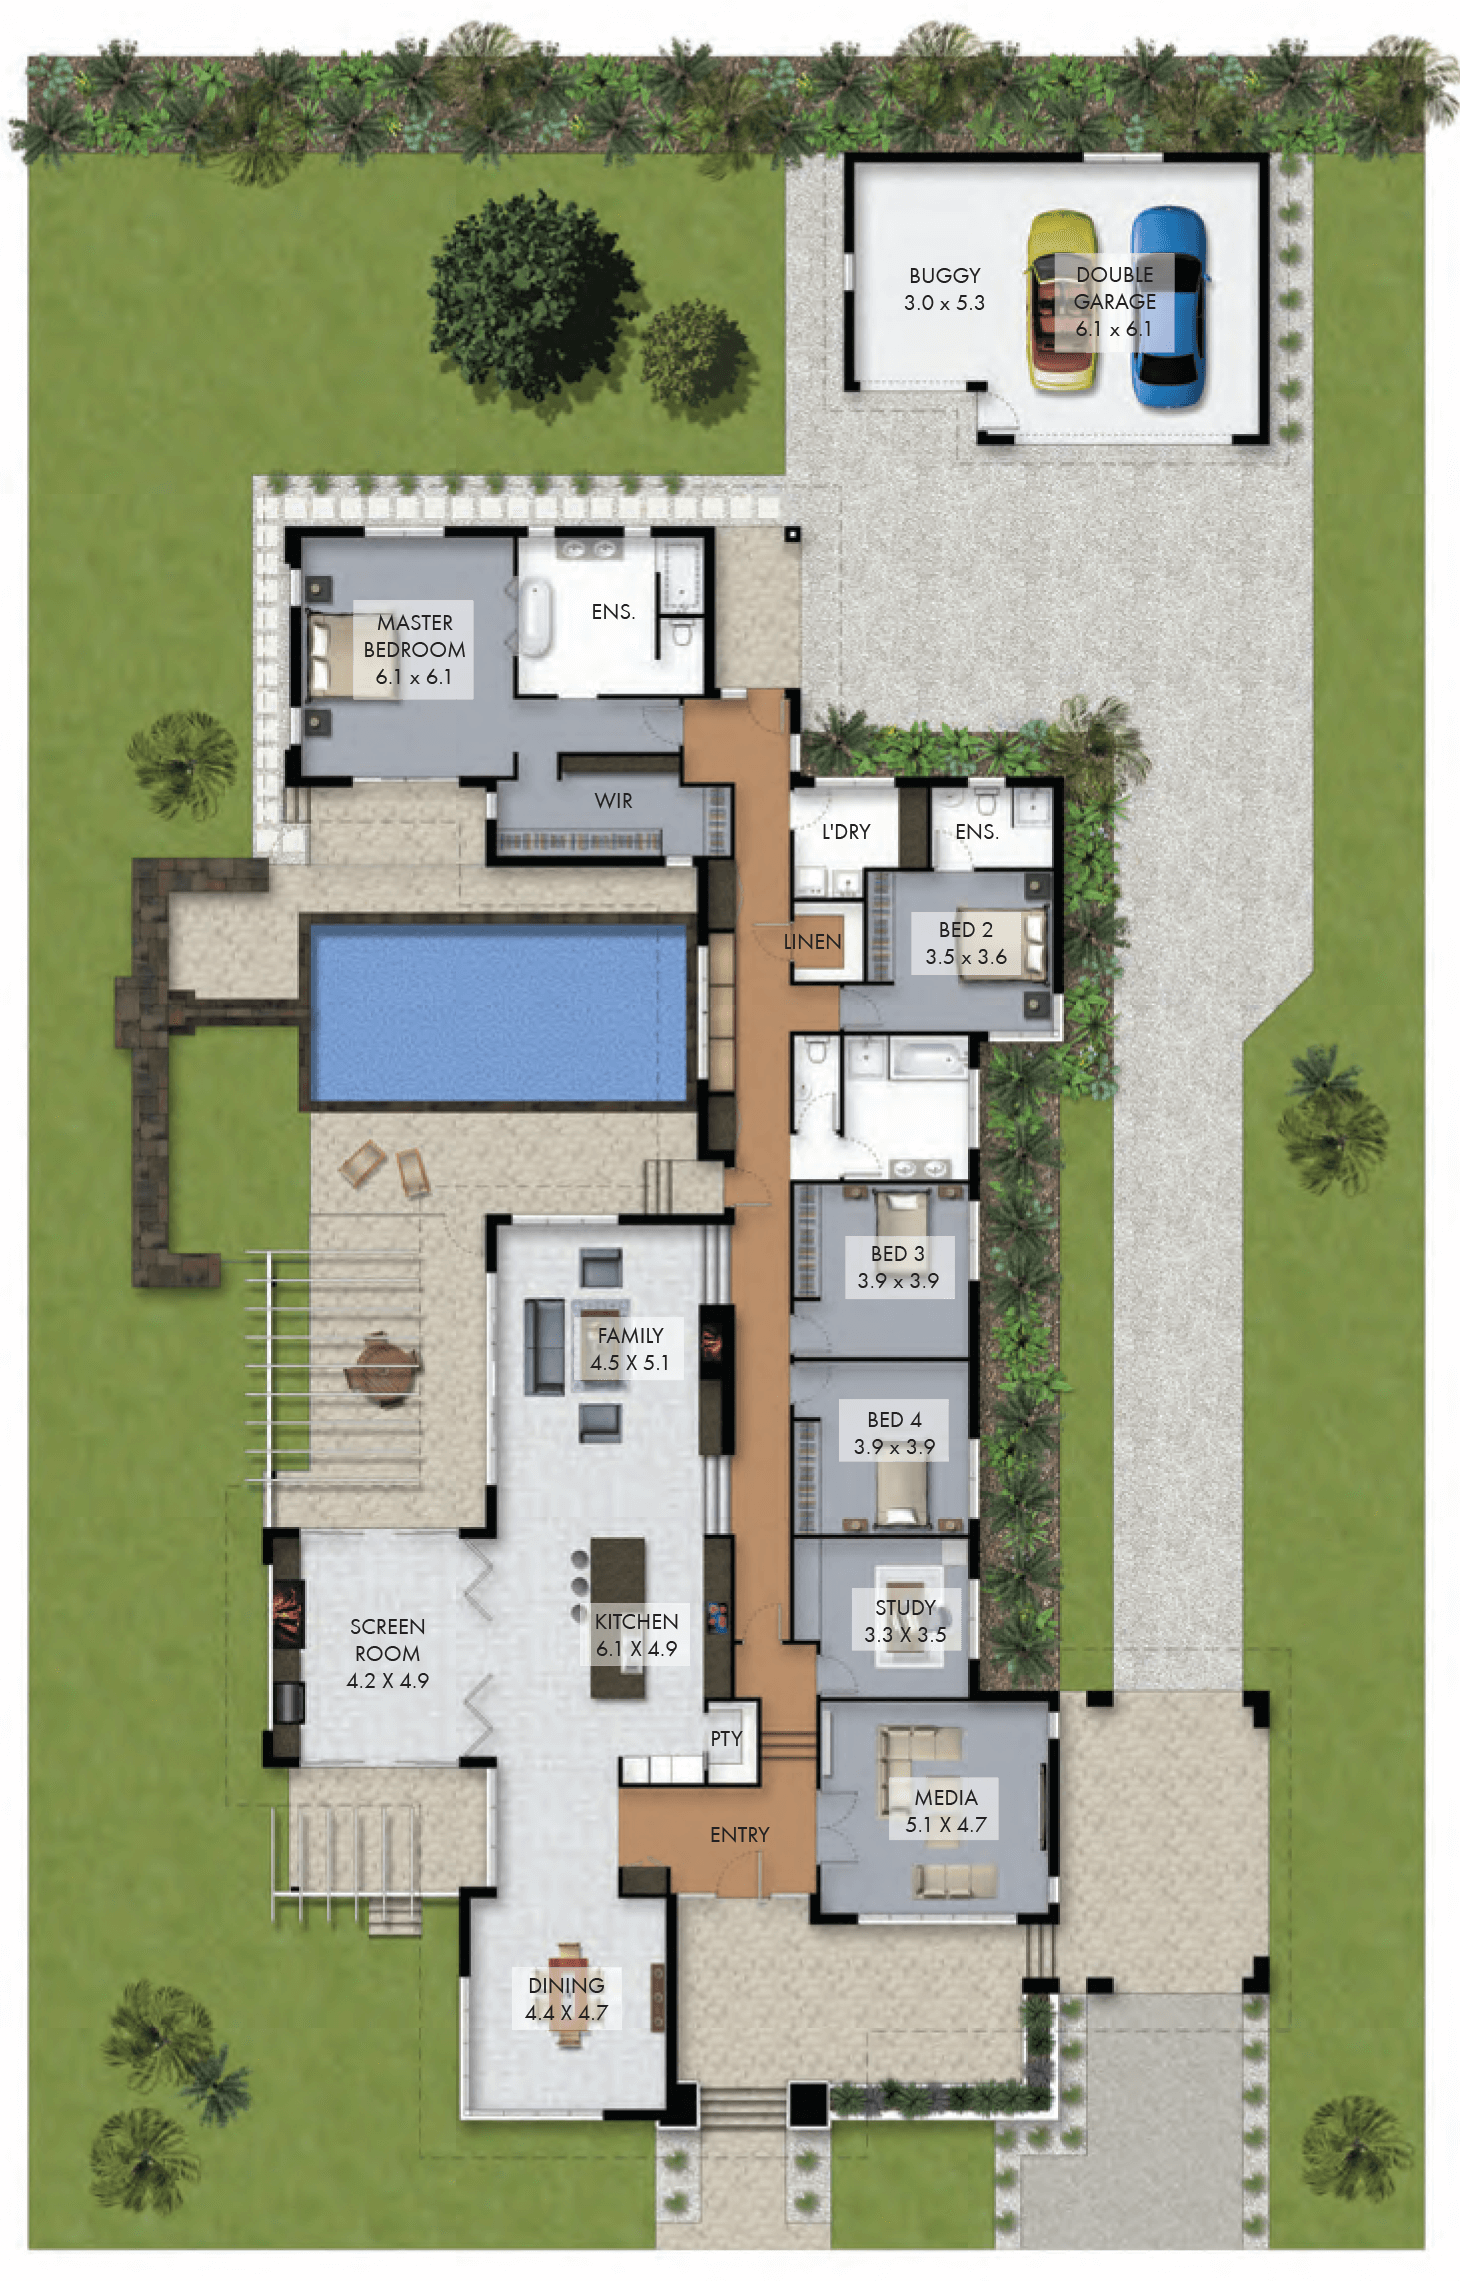 Floor Plan Friday: Luxury 4 bedroom family home with pool | Layouts ...